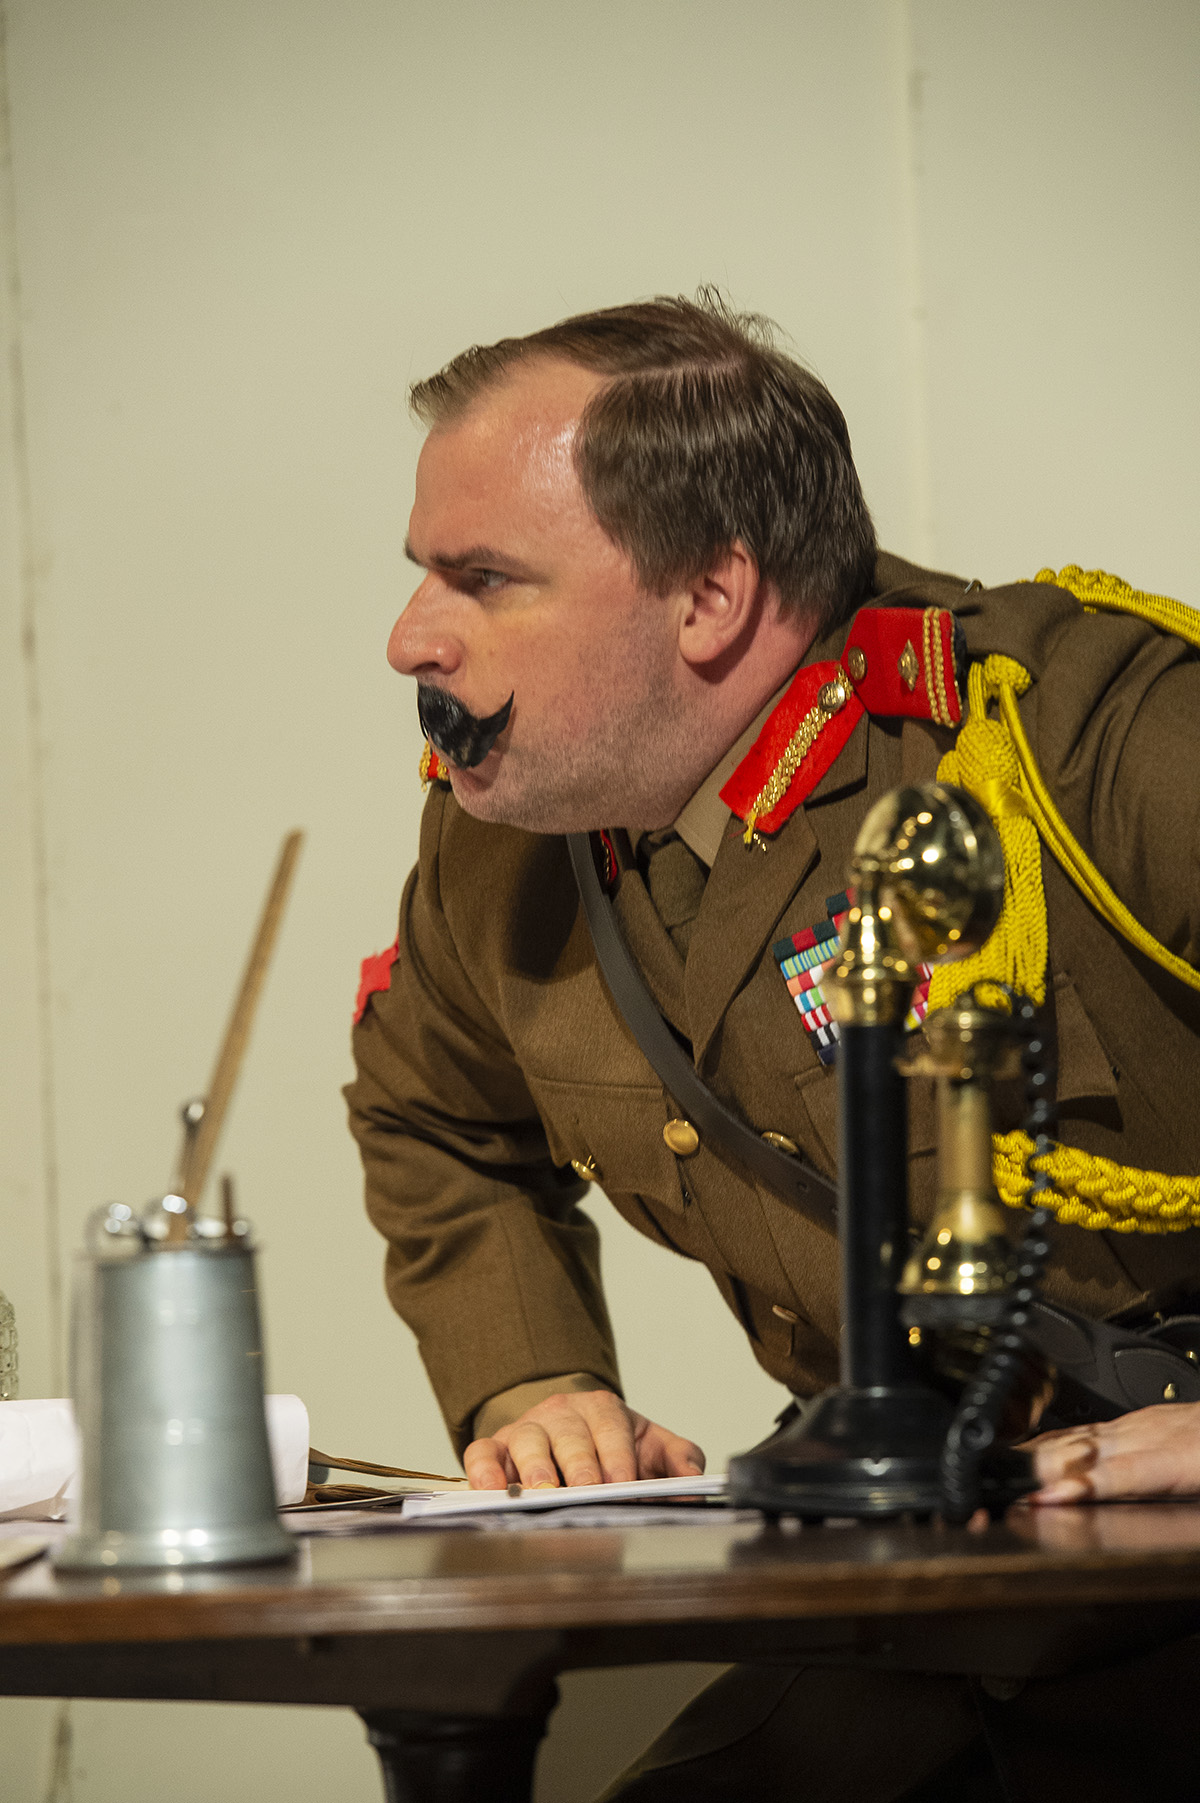 MKTOC BA4 - The Final Push - Melchett